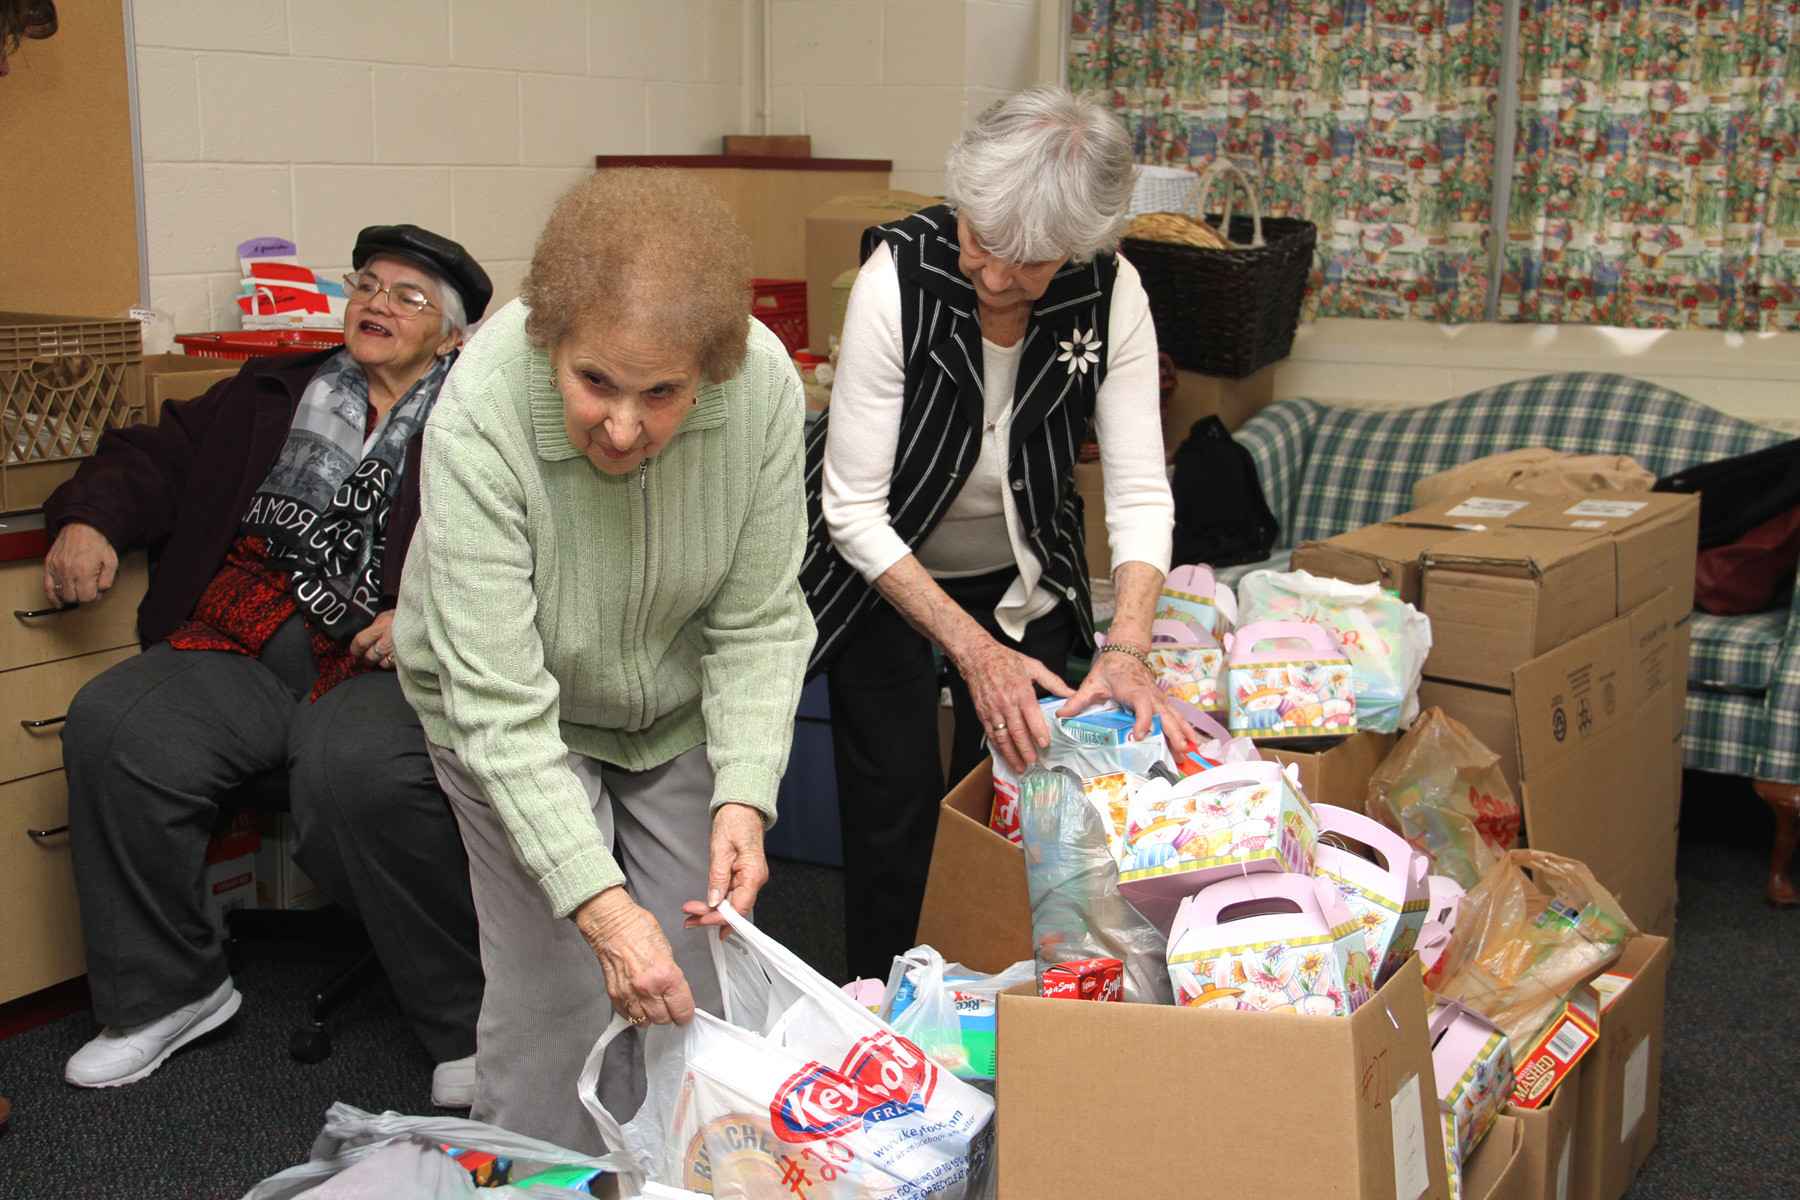 Parishioners Mary Gluck and Angelina Bonfiglio sorted through the boxes of food.